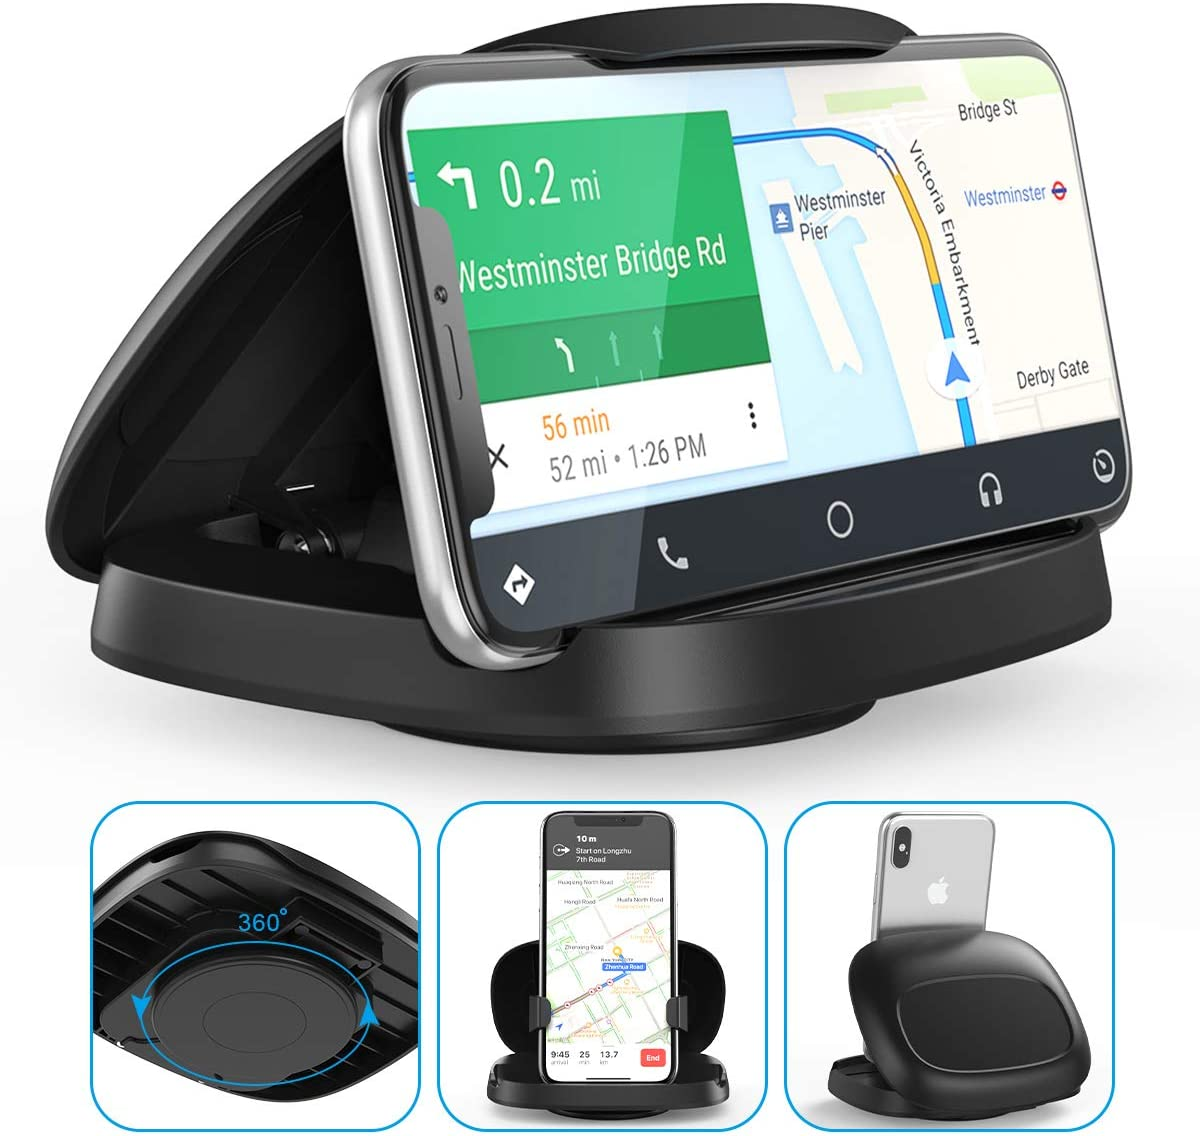 Cell Phone Holder for Car,JOYEKY Vertical Horizontal Car Phone Mount with 360° Rotate Detachable Magnetic Base Dashboard Cradle Compatible iPhone Samsung Galaxy Android Smartphones, GPS Devices